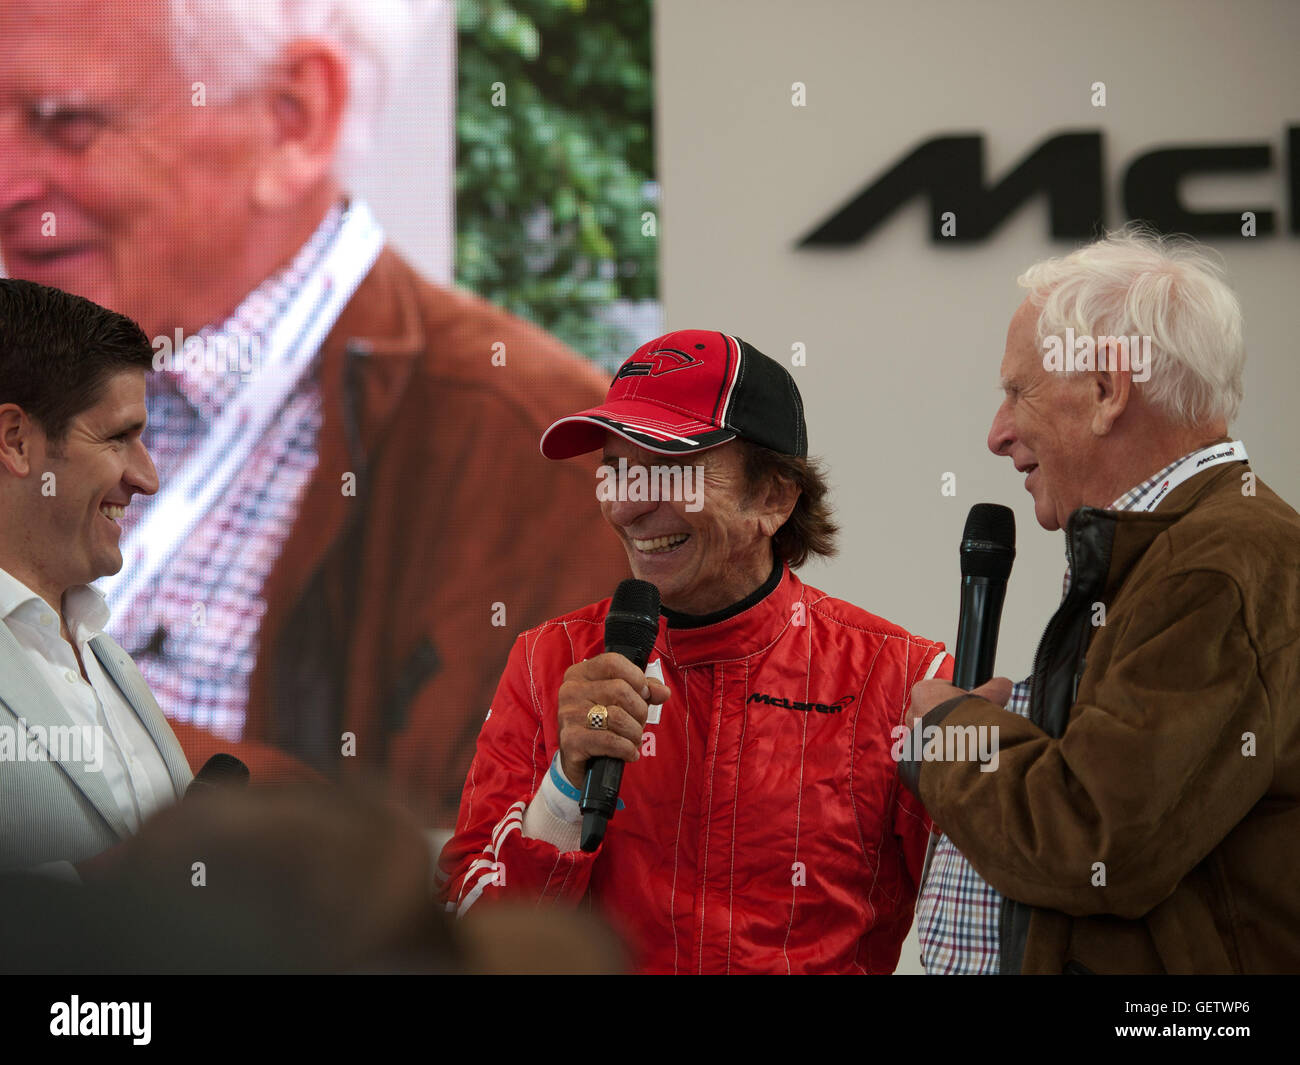 2016 Goodwood Festival of Speed UK - Emerson Fittipaldi speaking on the McLaren stand with Gordon Coppuck Stock Photo